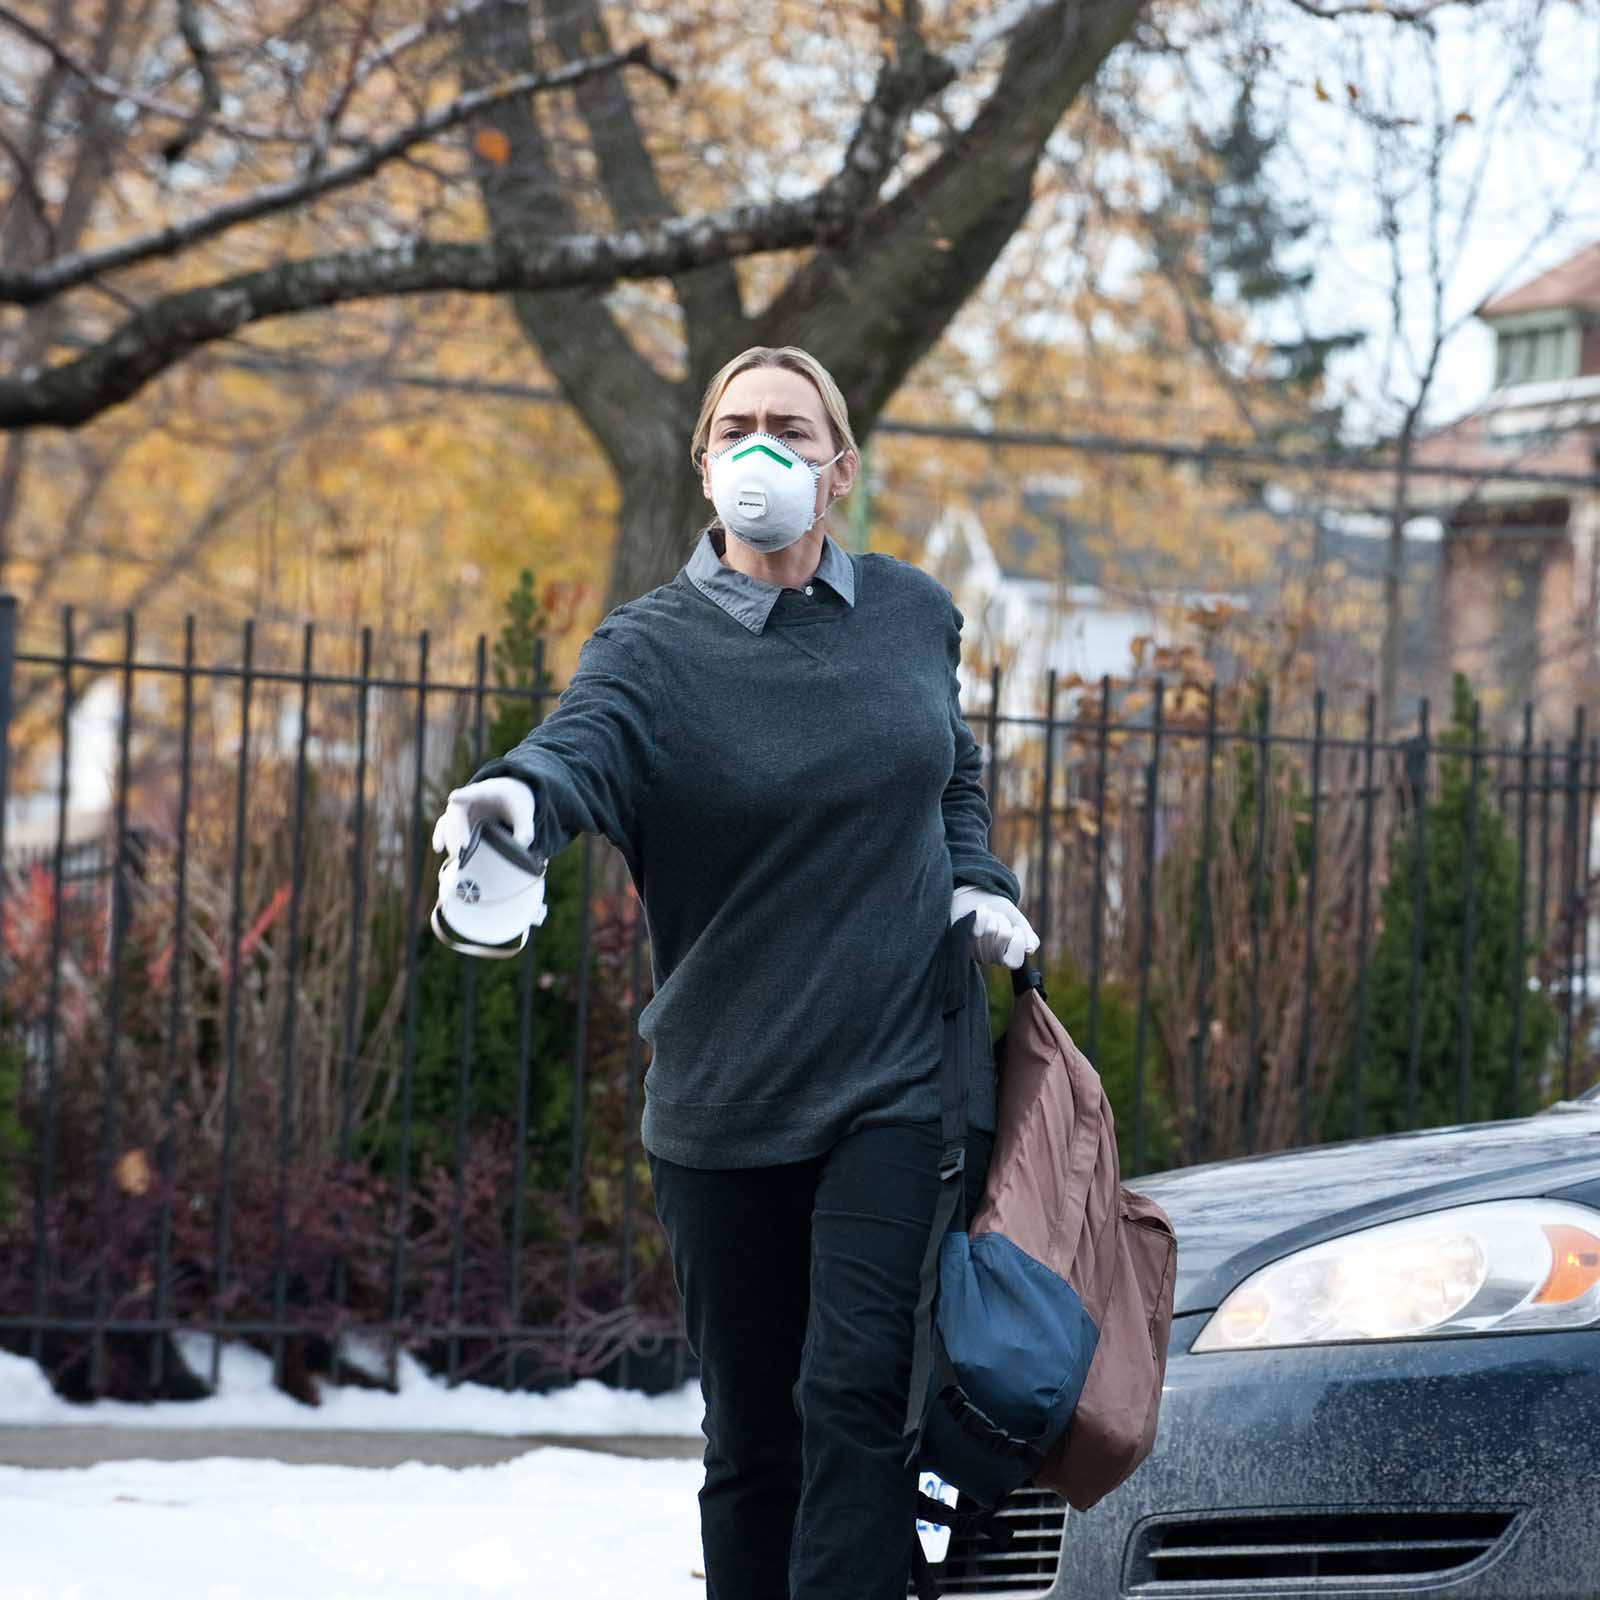 It's no surprise a film like 'Contagion' is coming back into light. Steven Soderbergh and Scott Z. Burns may have truly predicted the future in 2011.